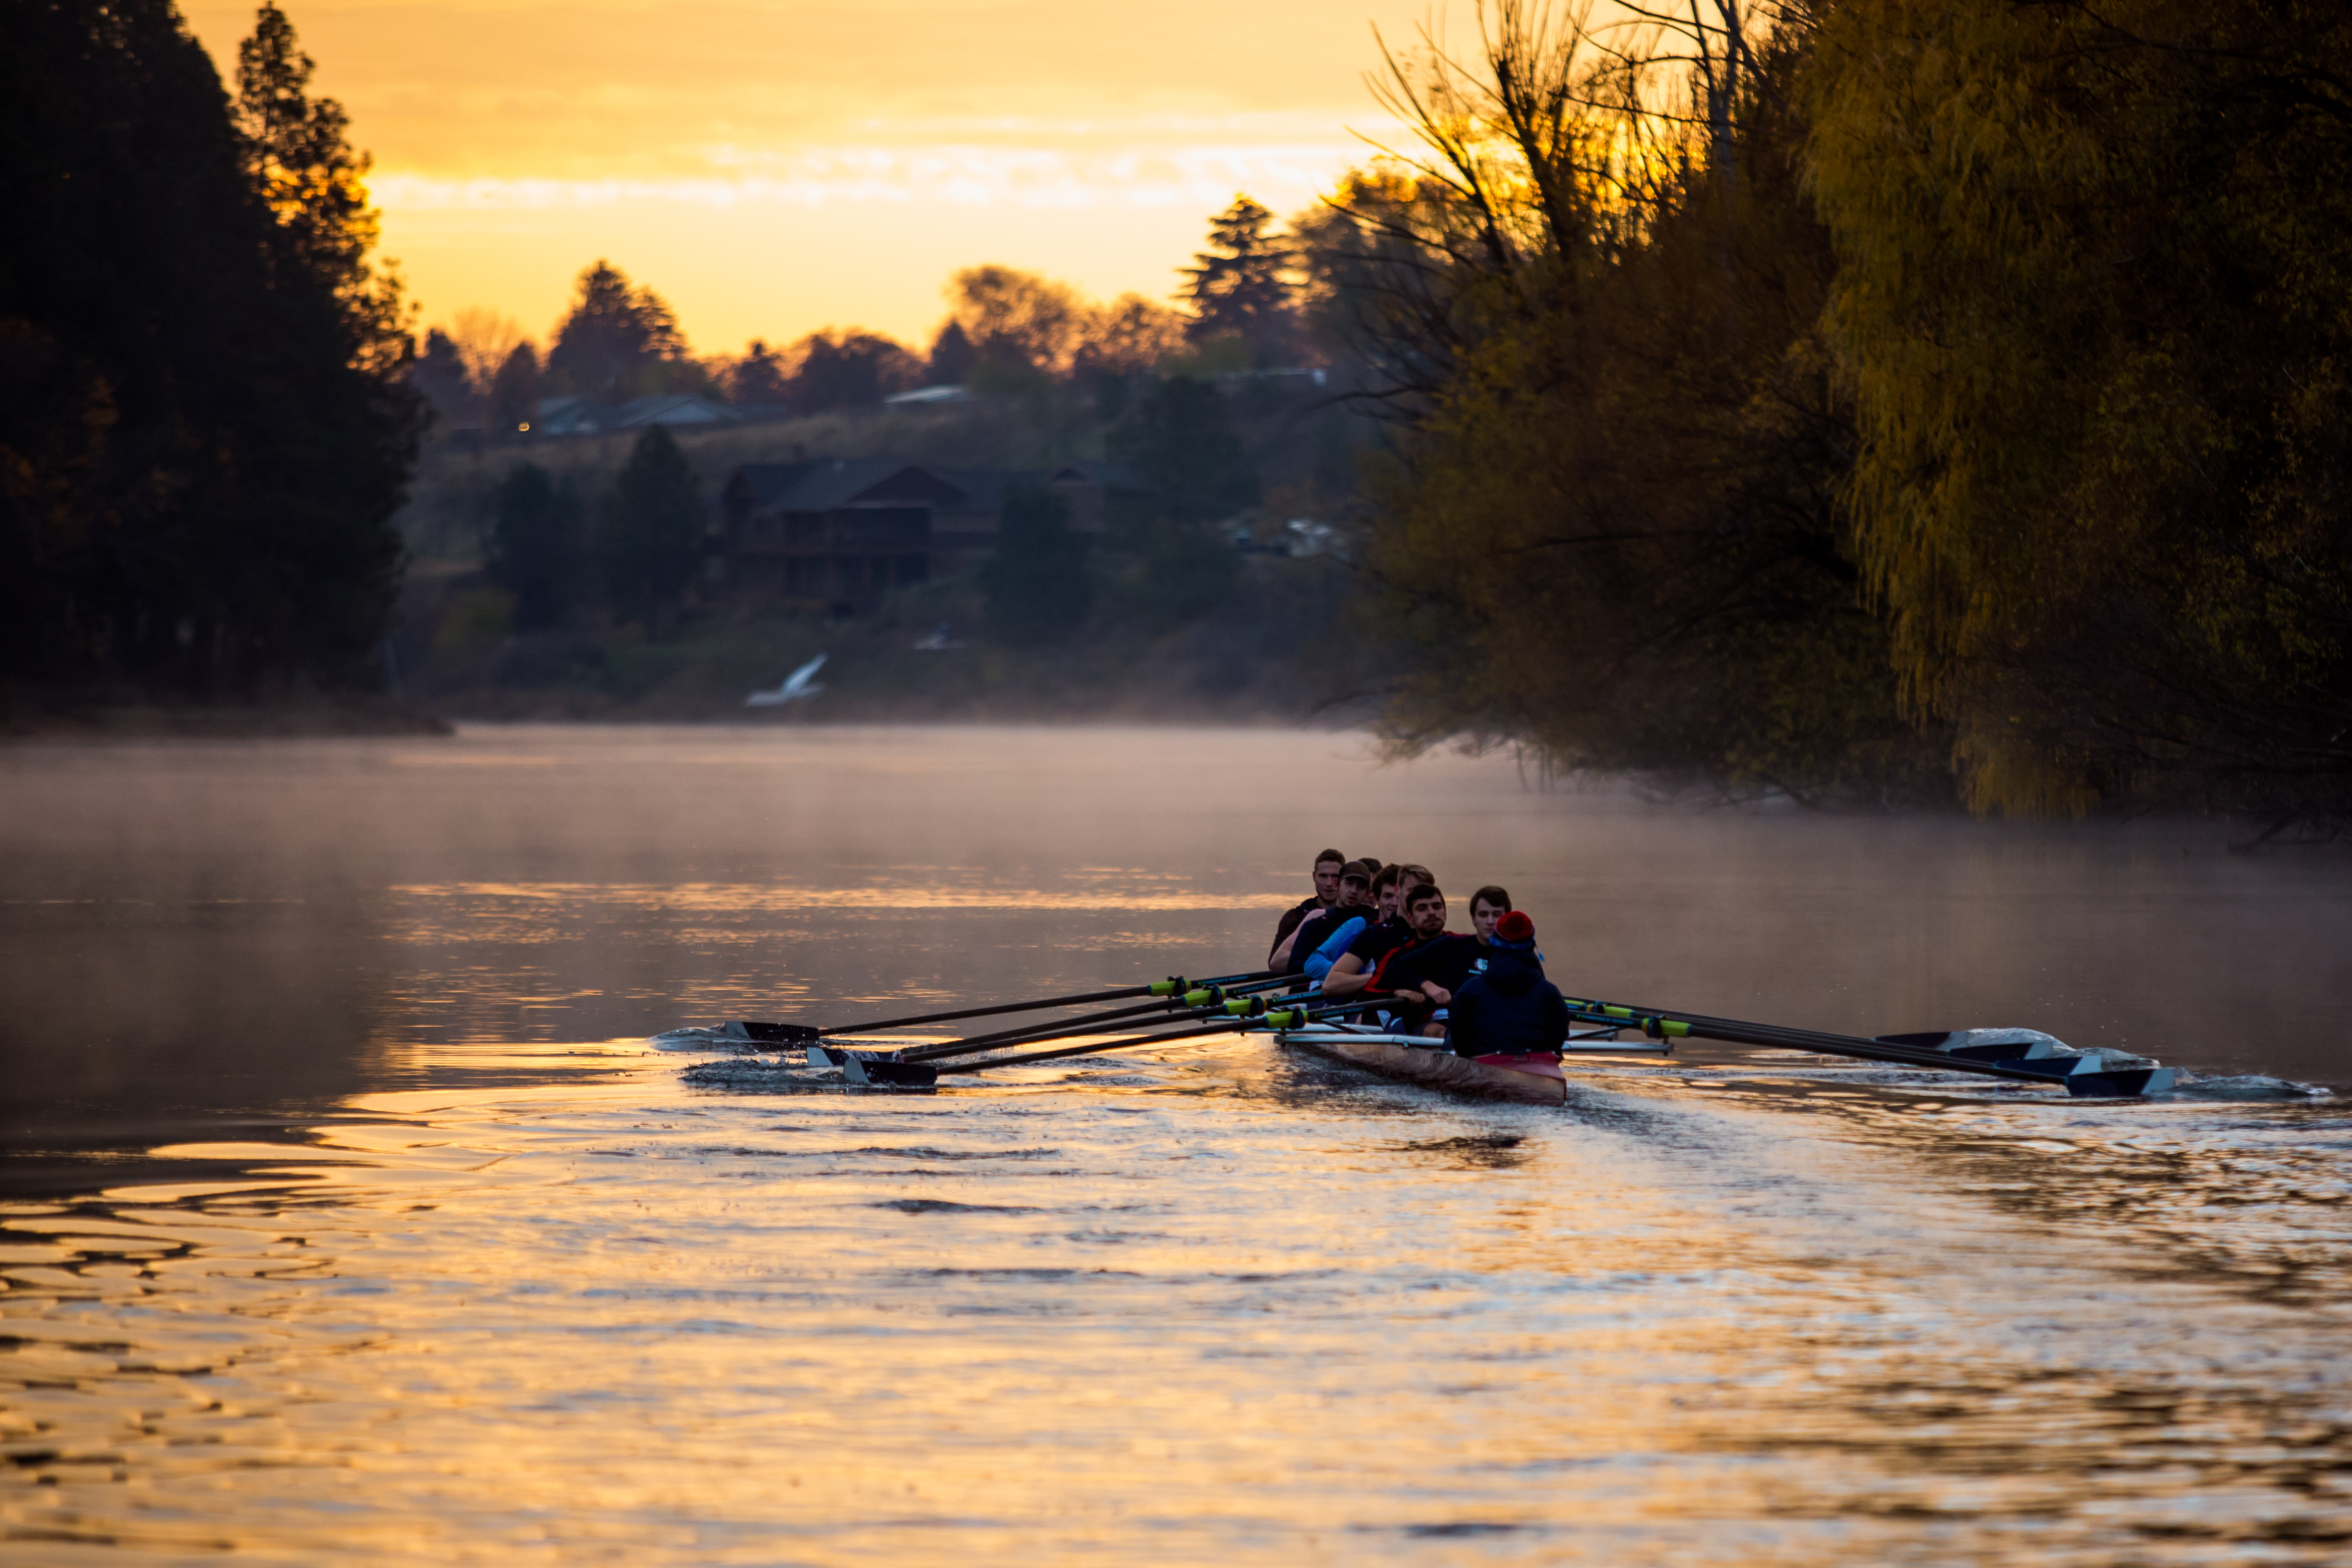 20161109 Rowing Practice -AEF-18